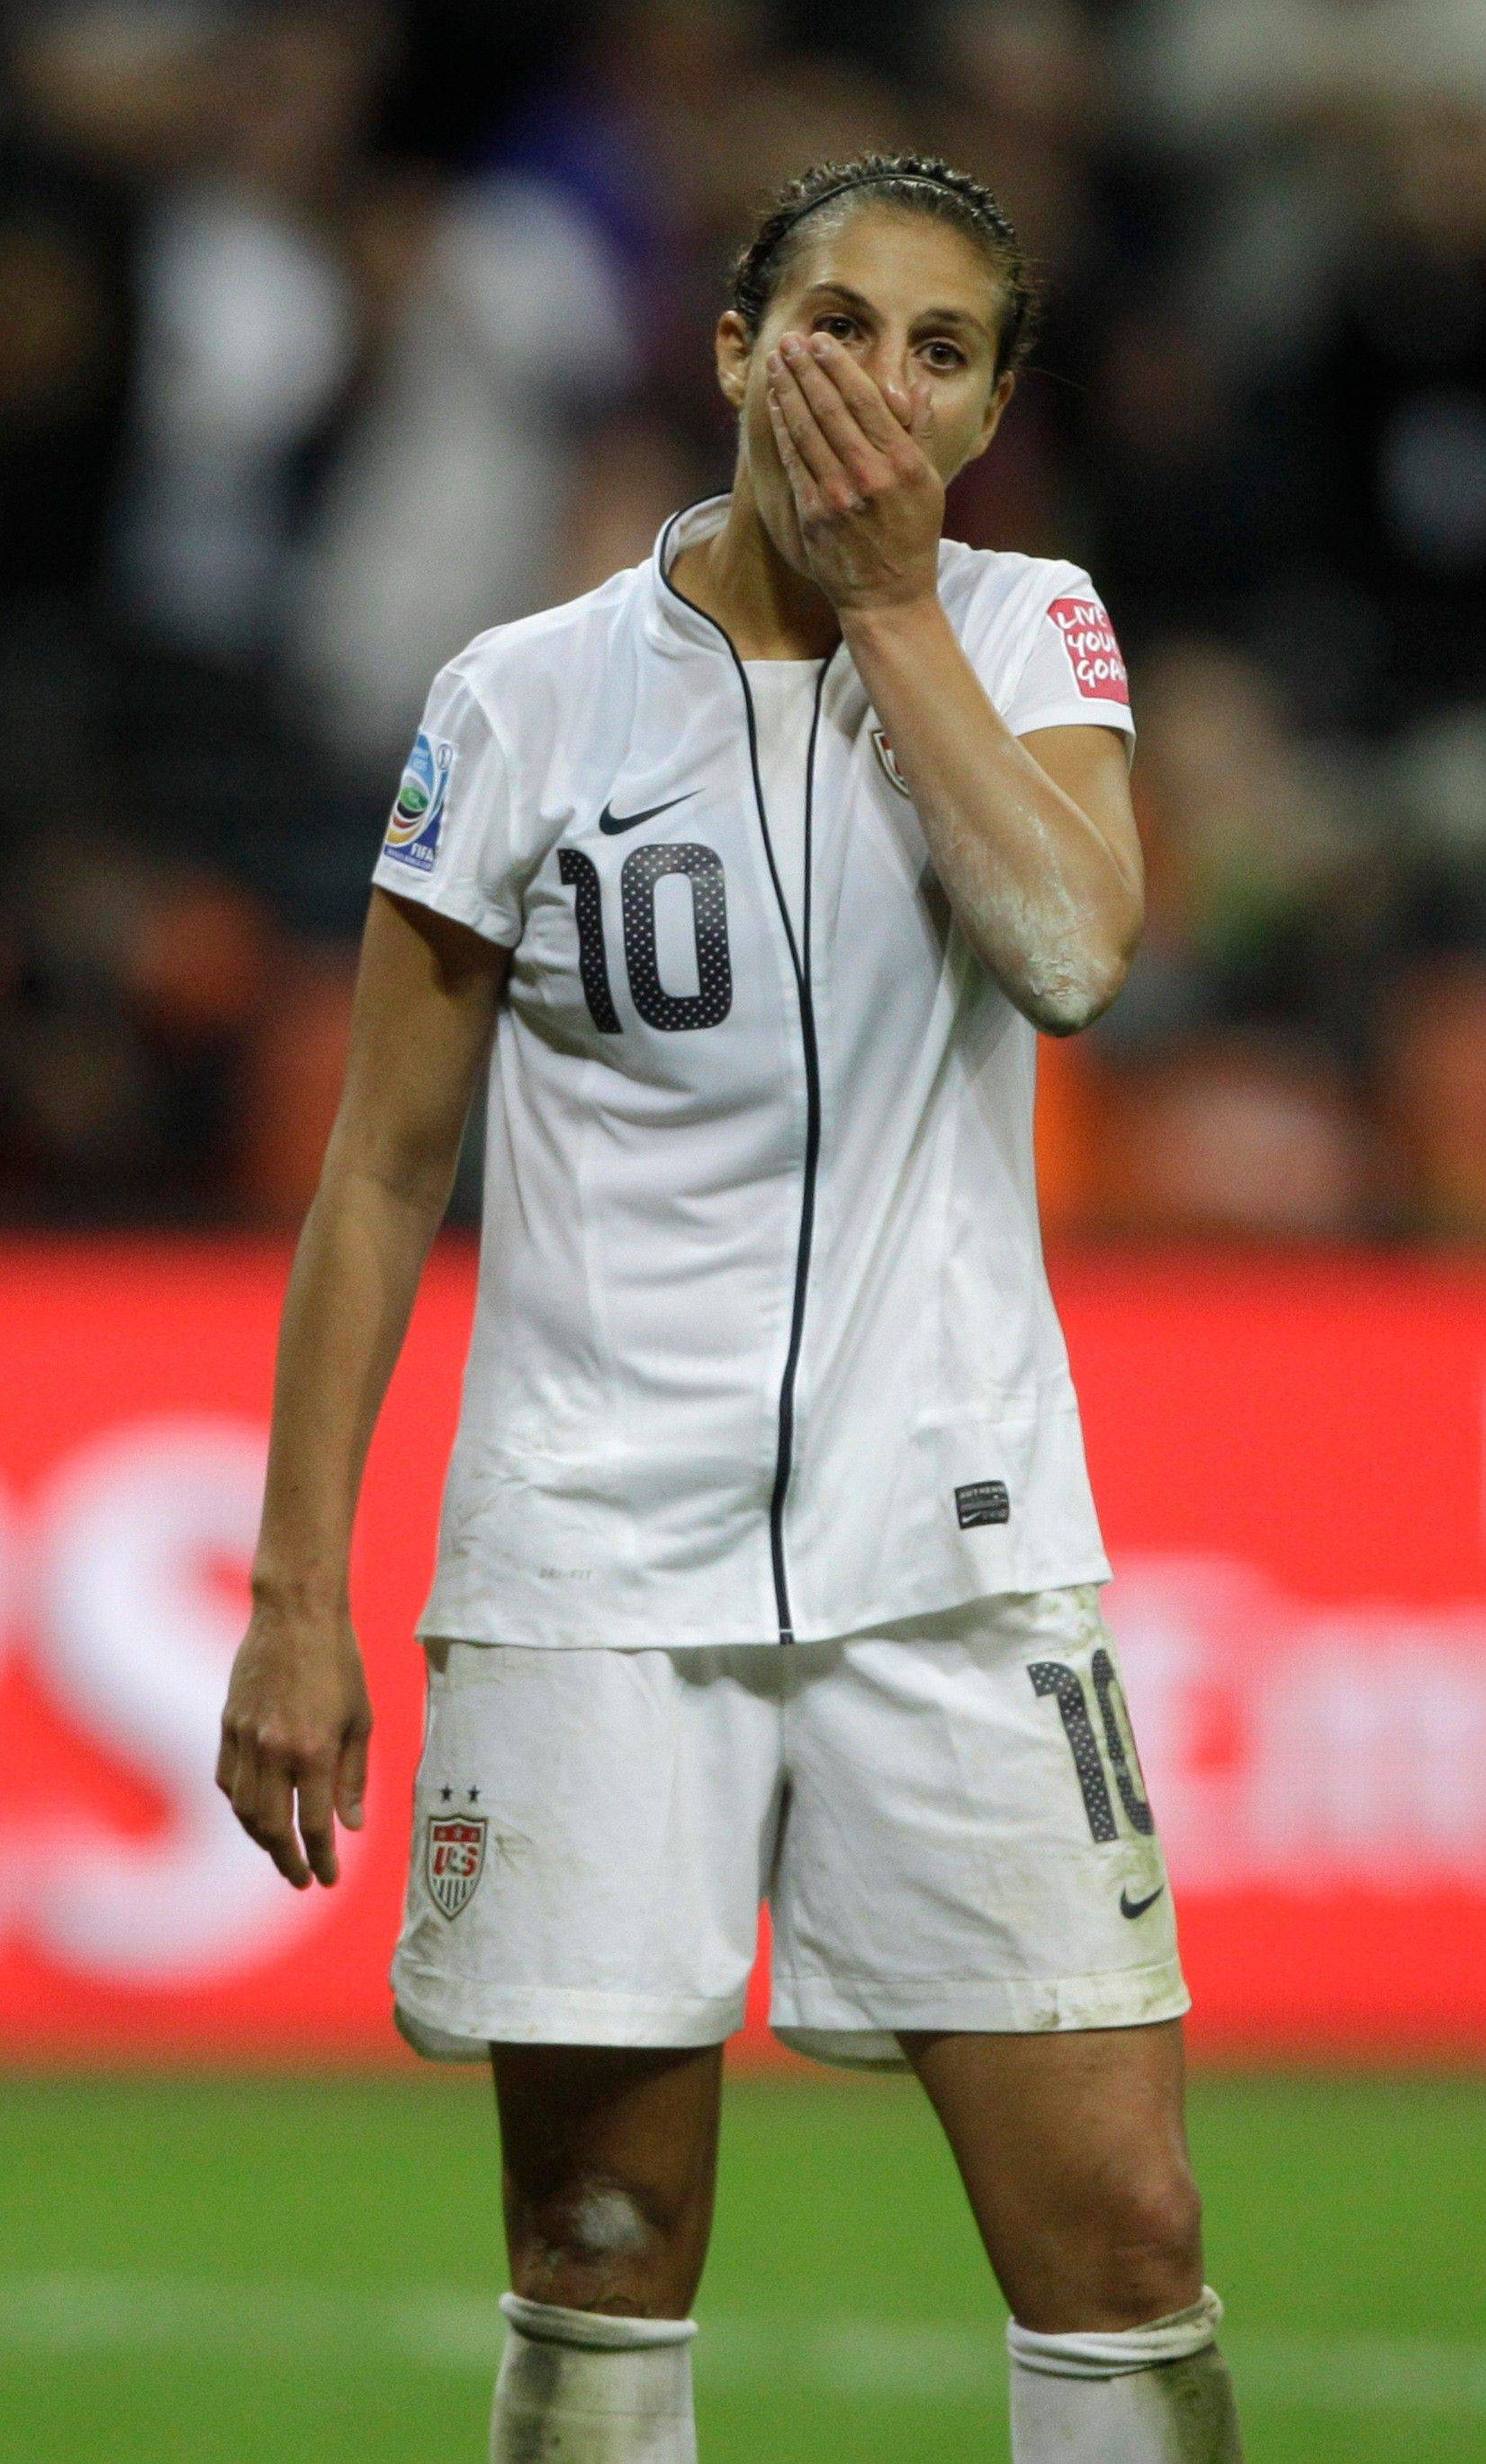 Japan takes World Cup on penalty kicks